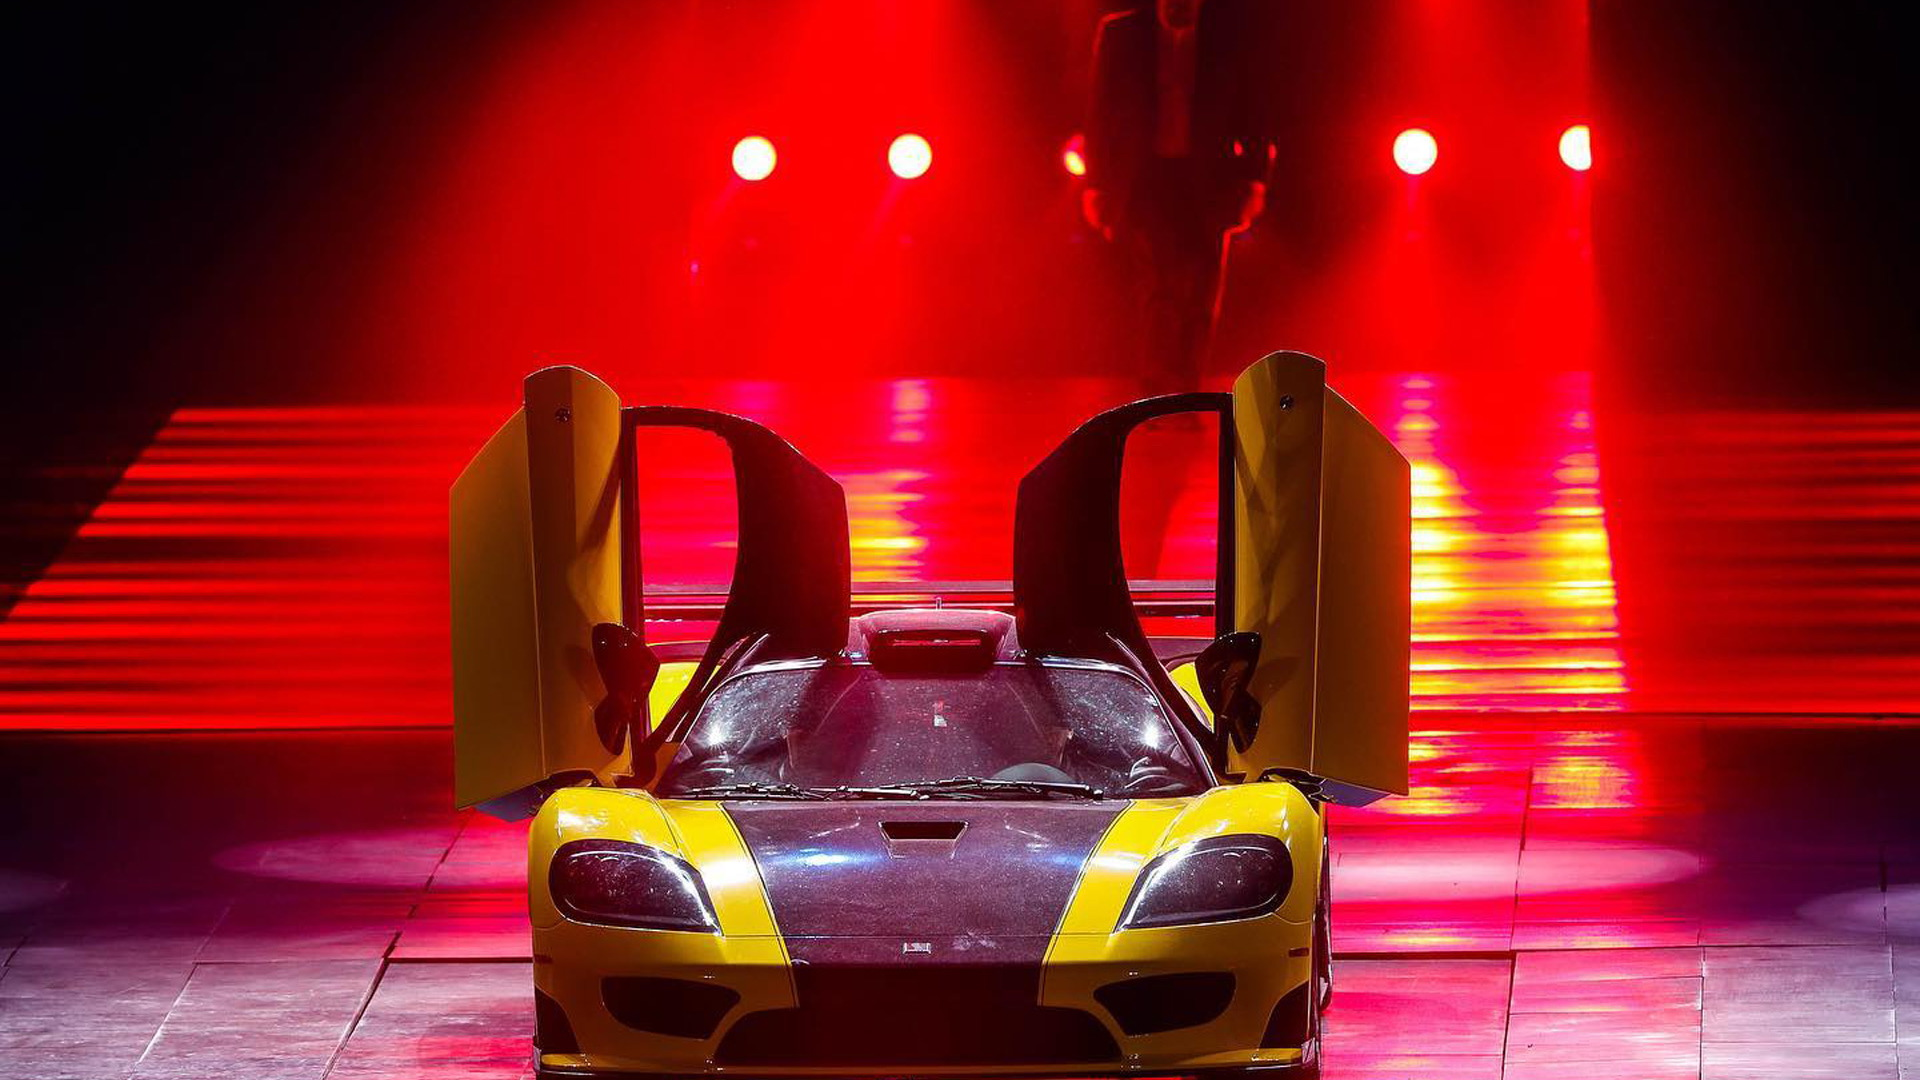 Saleen S7 Le Mans shown at Saleen launch in China